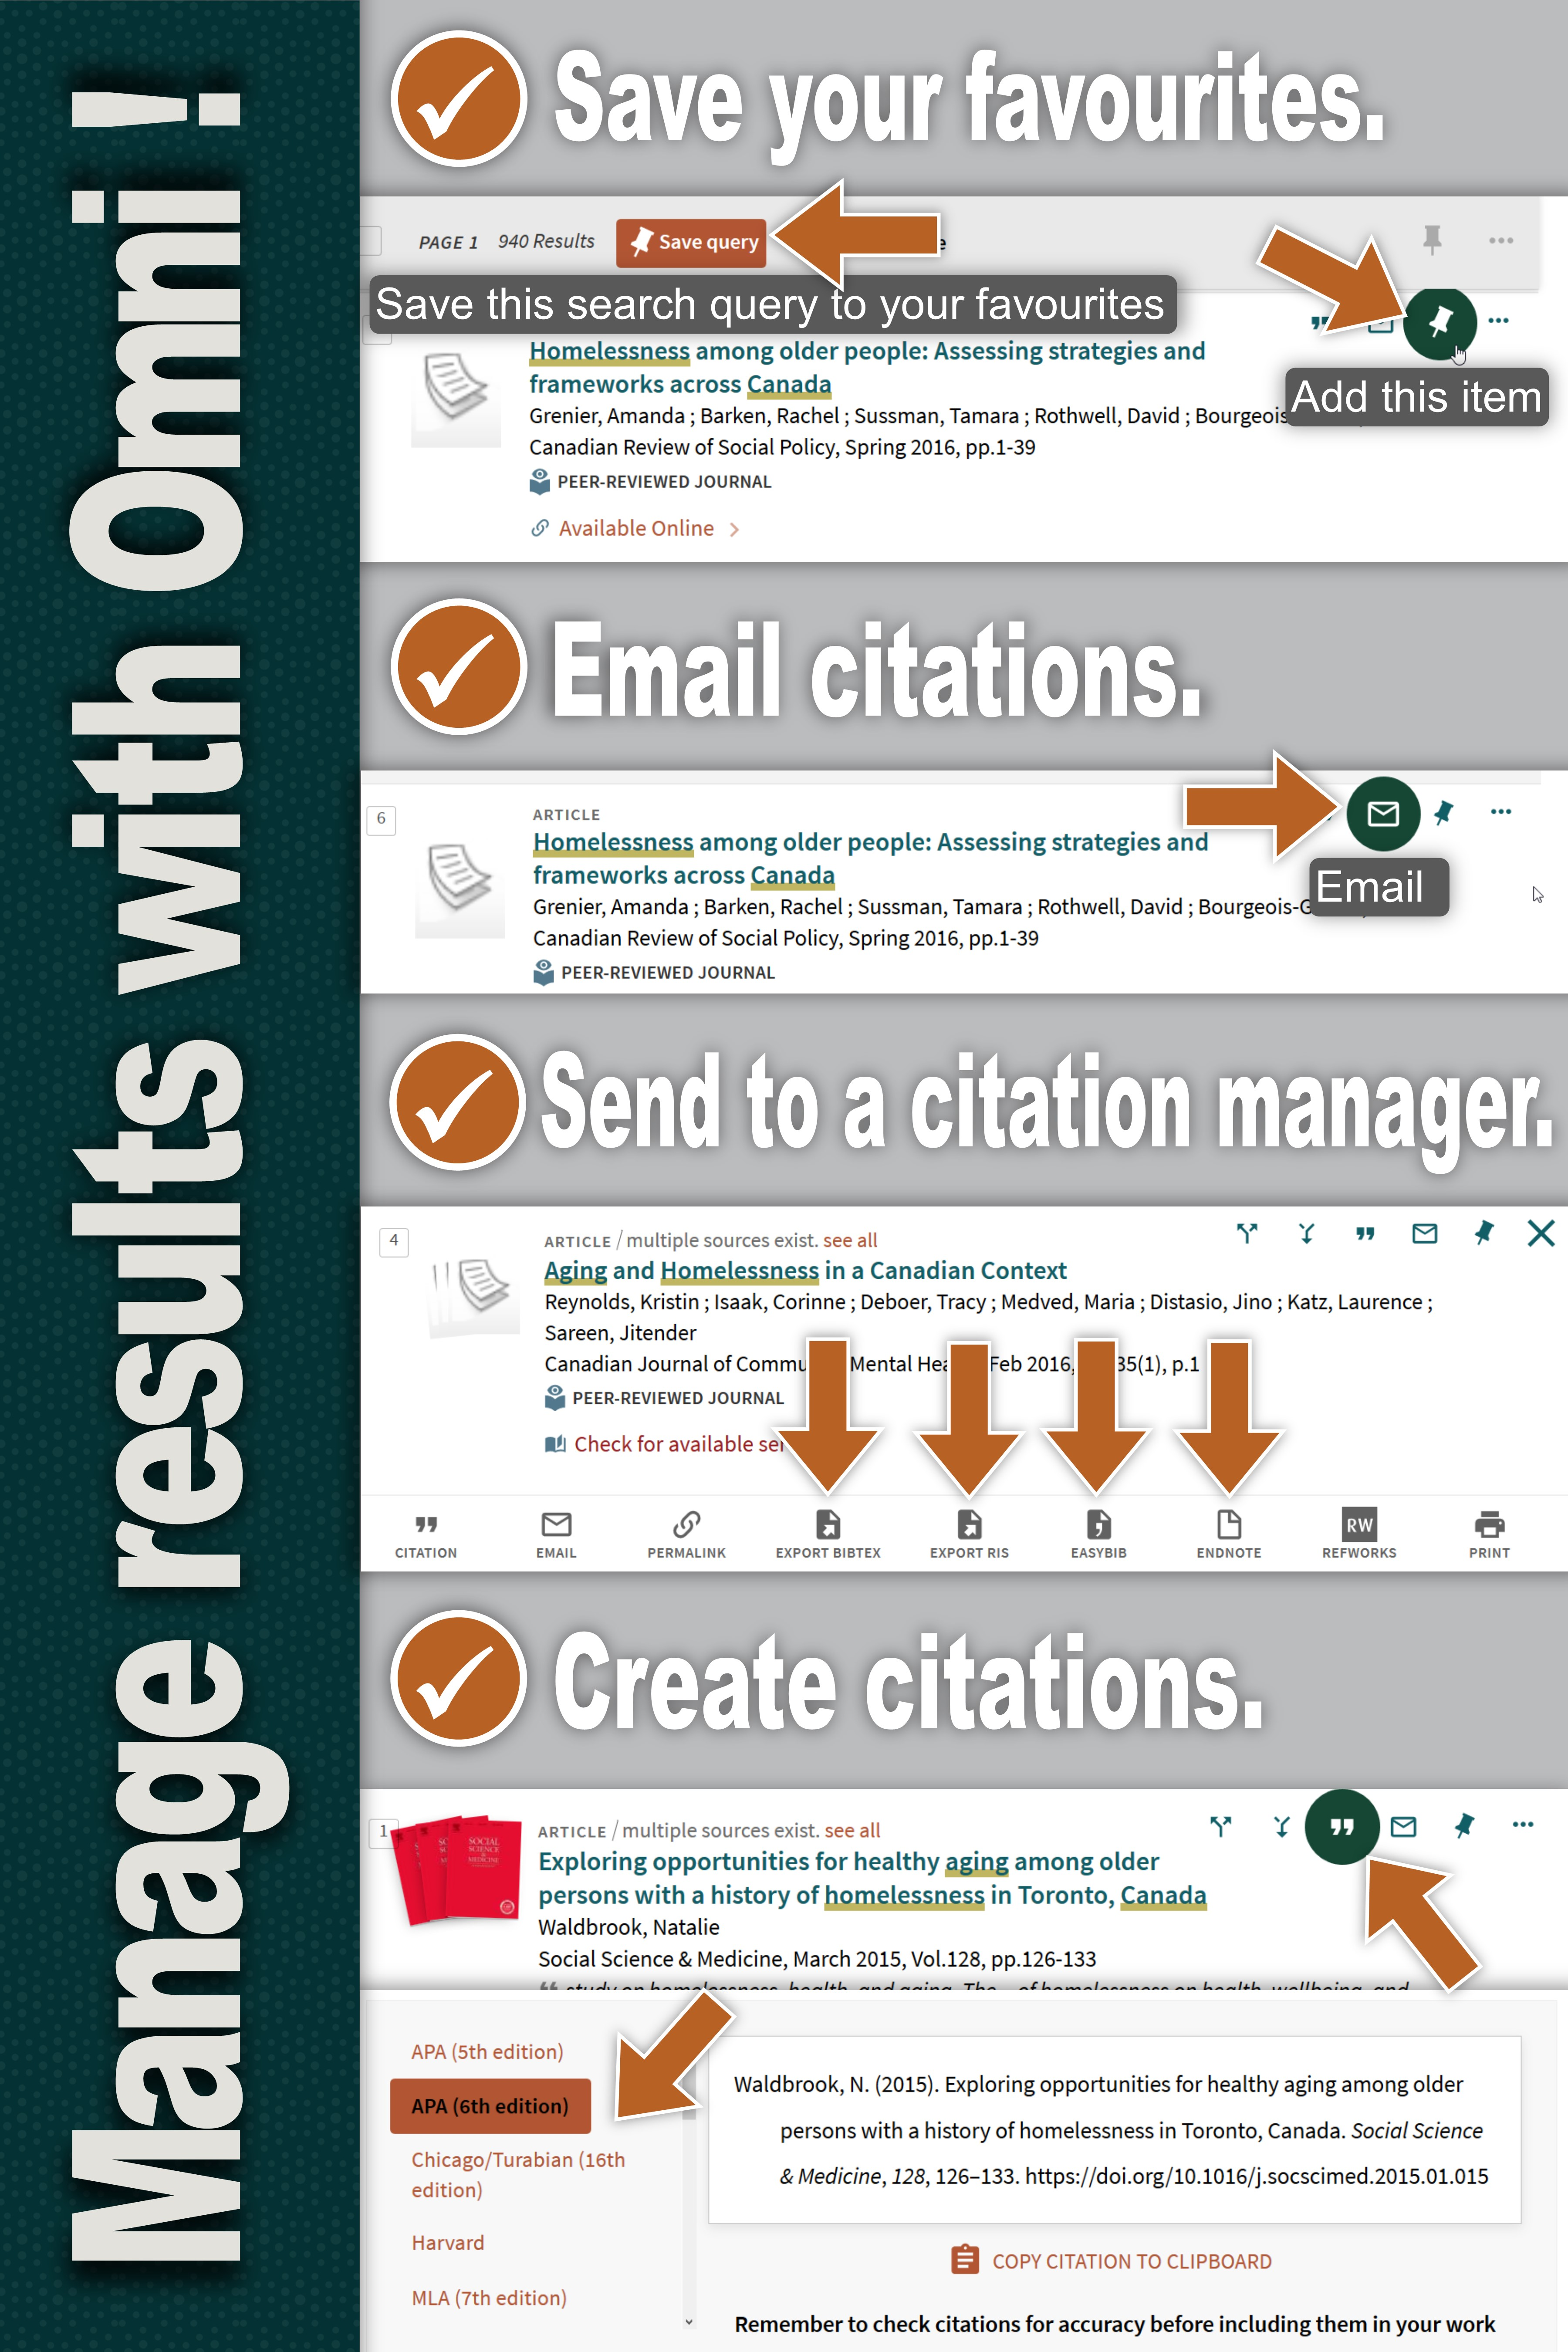 Poster showing Save Favourites, Email Citations, Send to a Citation Manager, and Create Citations